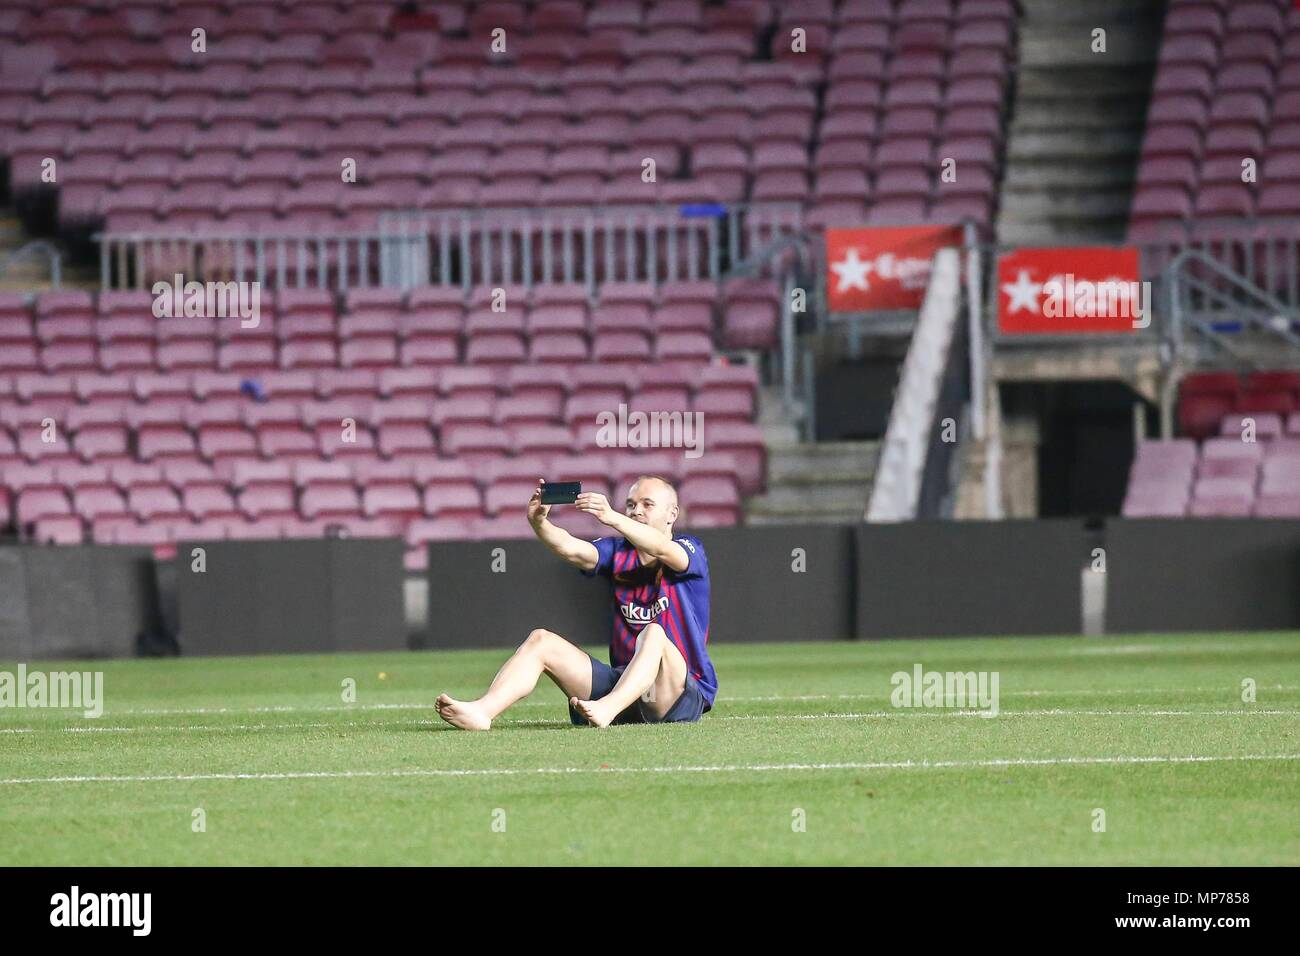 SPAIN - 20th of May: Andres Iniesta alone in the grass after  the match between FC Barcelona against Real Sociedad for the round 38 of the Liga Santander, played at Camp Nou Stadium on 20th May 2018 in Barcelona, Spain. (Credit: Mikel Trigueros /Urbanandsport / Cordon Press)  Cordon Press - Stock Image